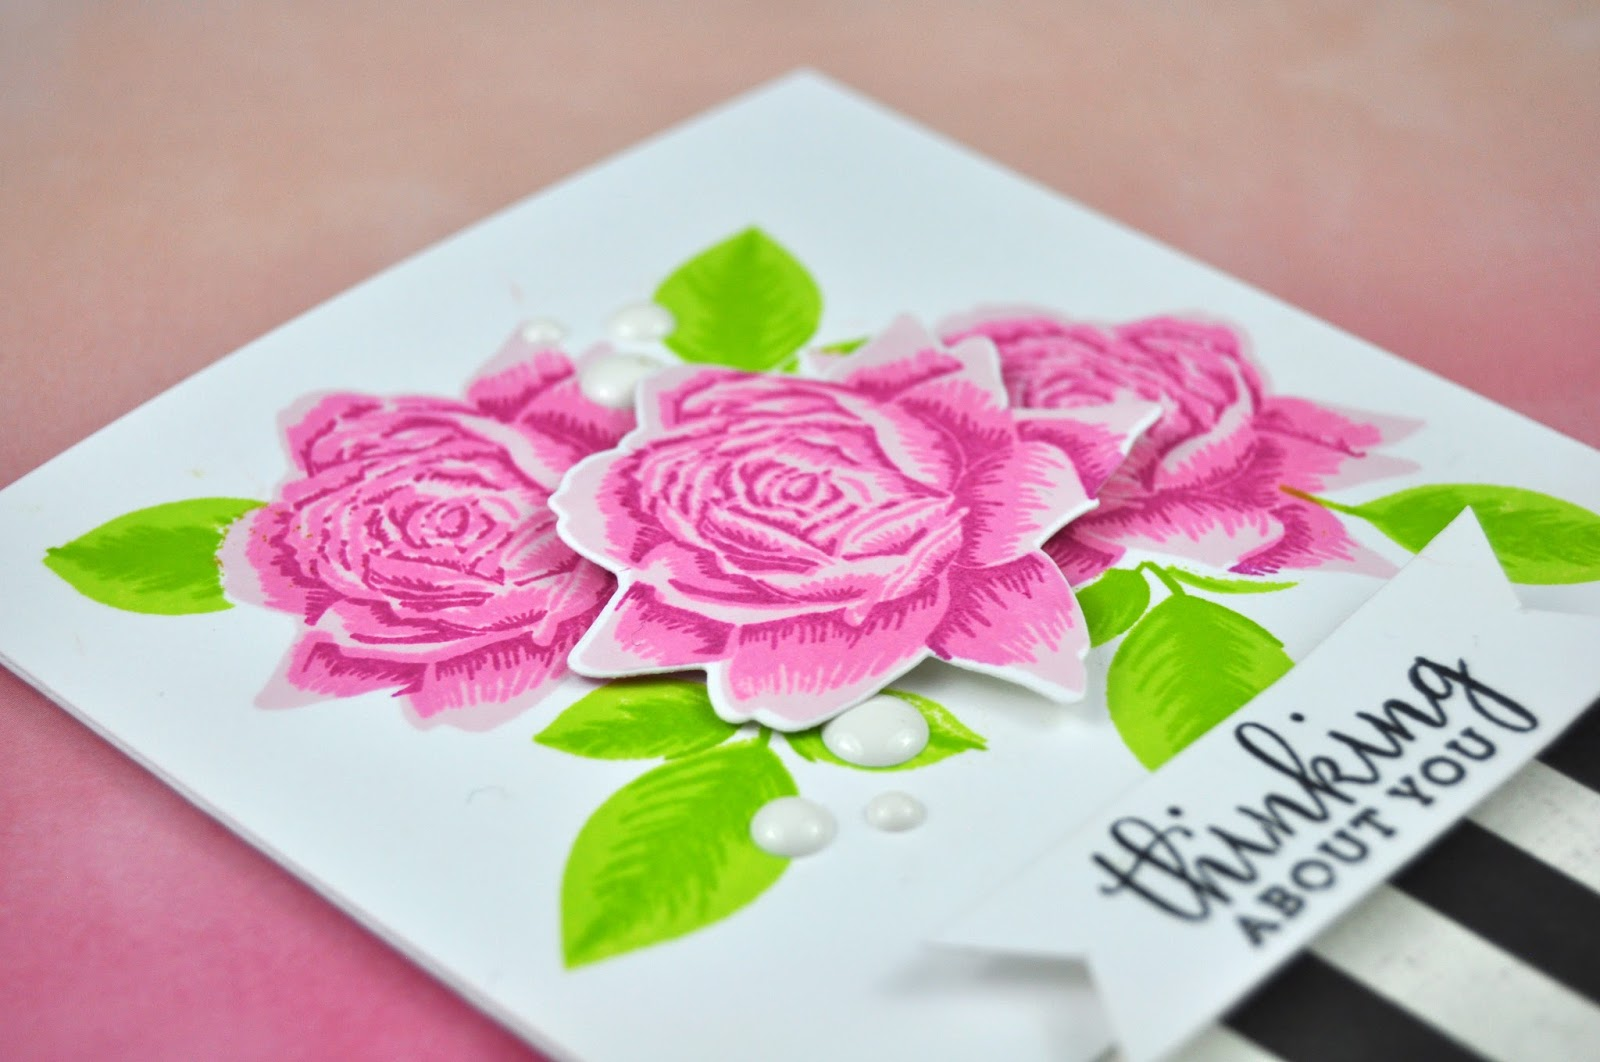 Altenew Bold Blossom Stamped Card by Jen Gallacher for www.jengallacher.com Card making with layered stamps from Altenew. Learn to layer stamps with Altenew inks and stamps. #stamping #cardmaker #jengallacher #altenew